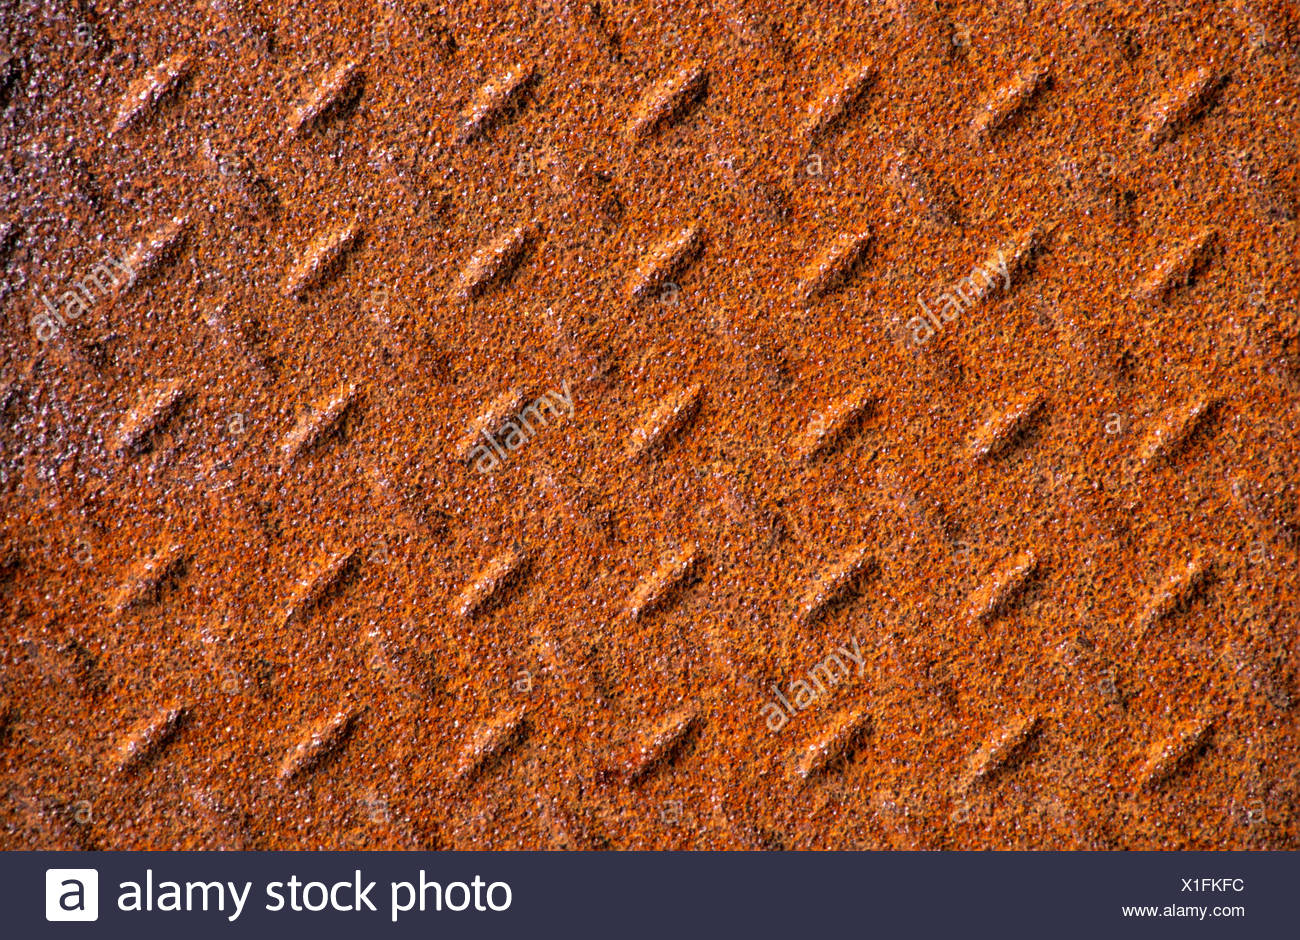 Rust-coloured metal surface - Stock Image